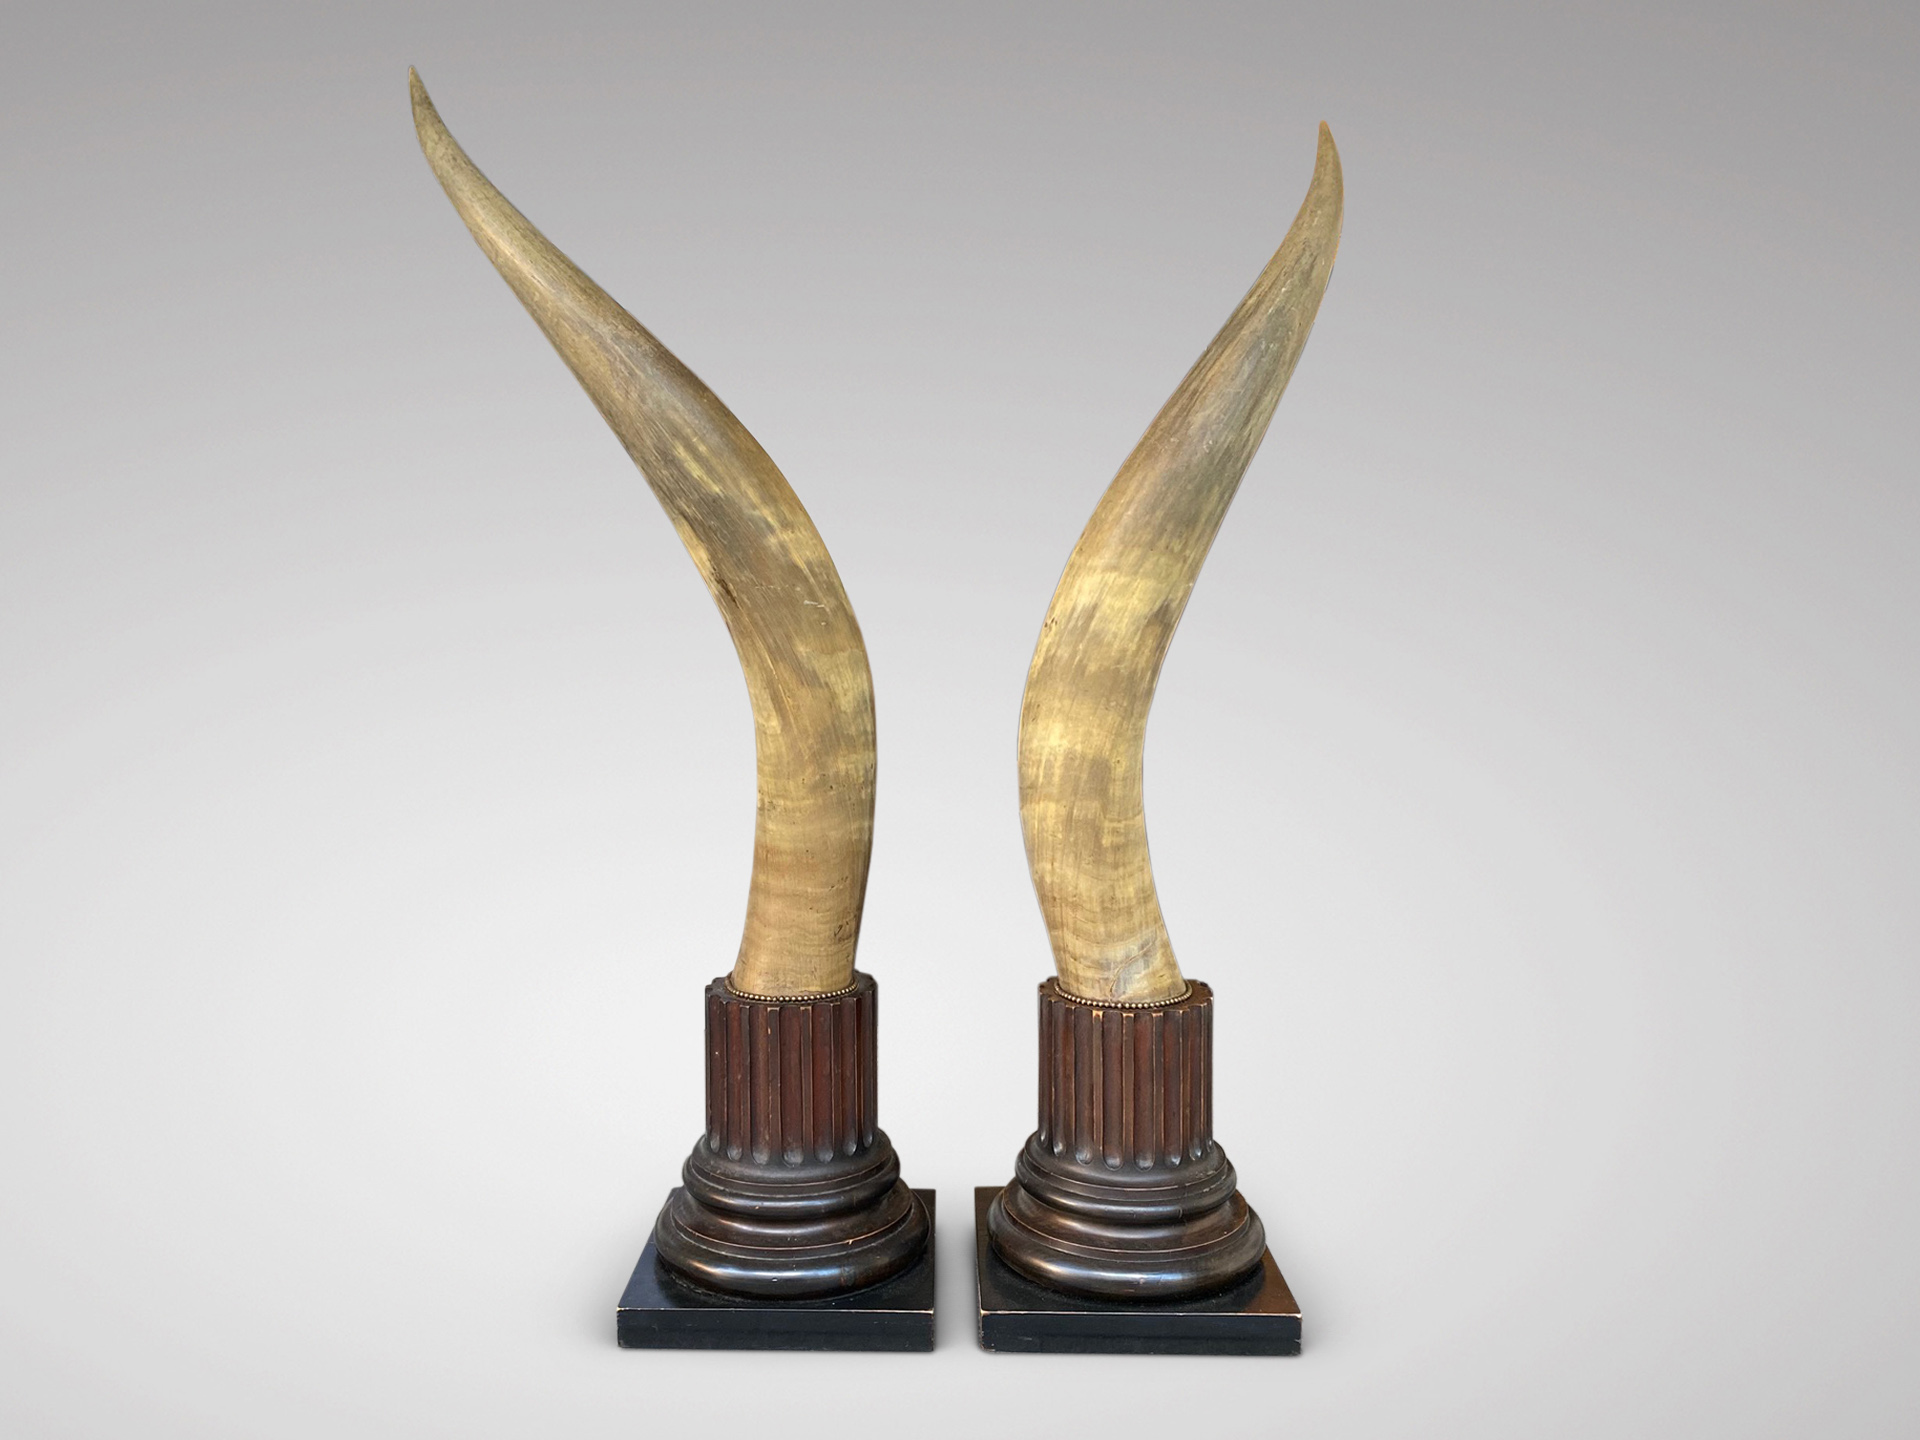 PAIR OF HORNS MOUNTED ON A PEDESTAL